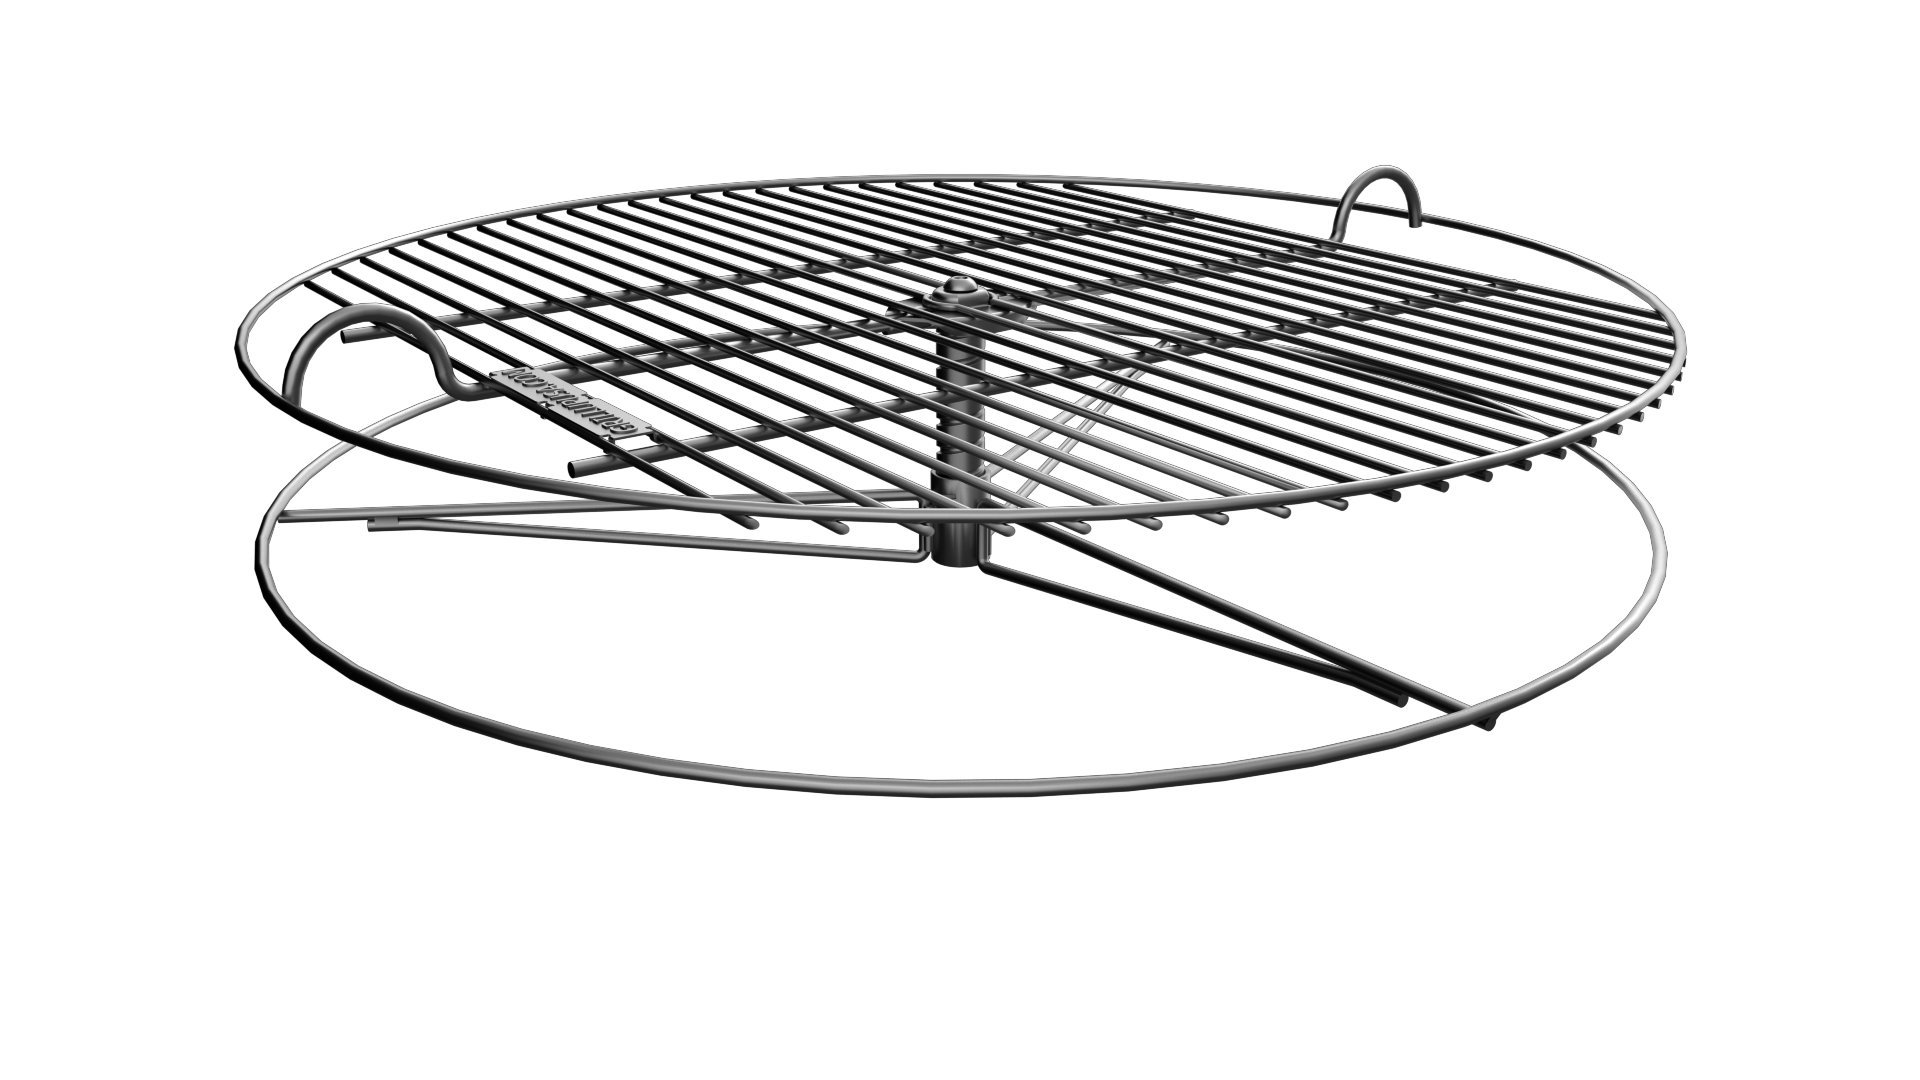 "GrillUp Height Adjustable BBQ Grill Grate | 100% Stainless Steel | Fits Weber and other 22"" Charcoal Kettle Grills"